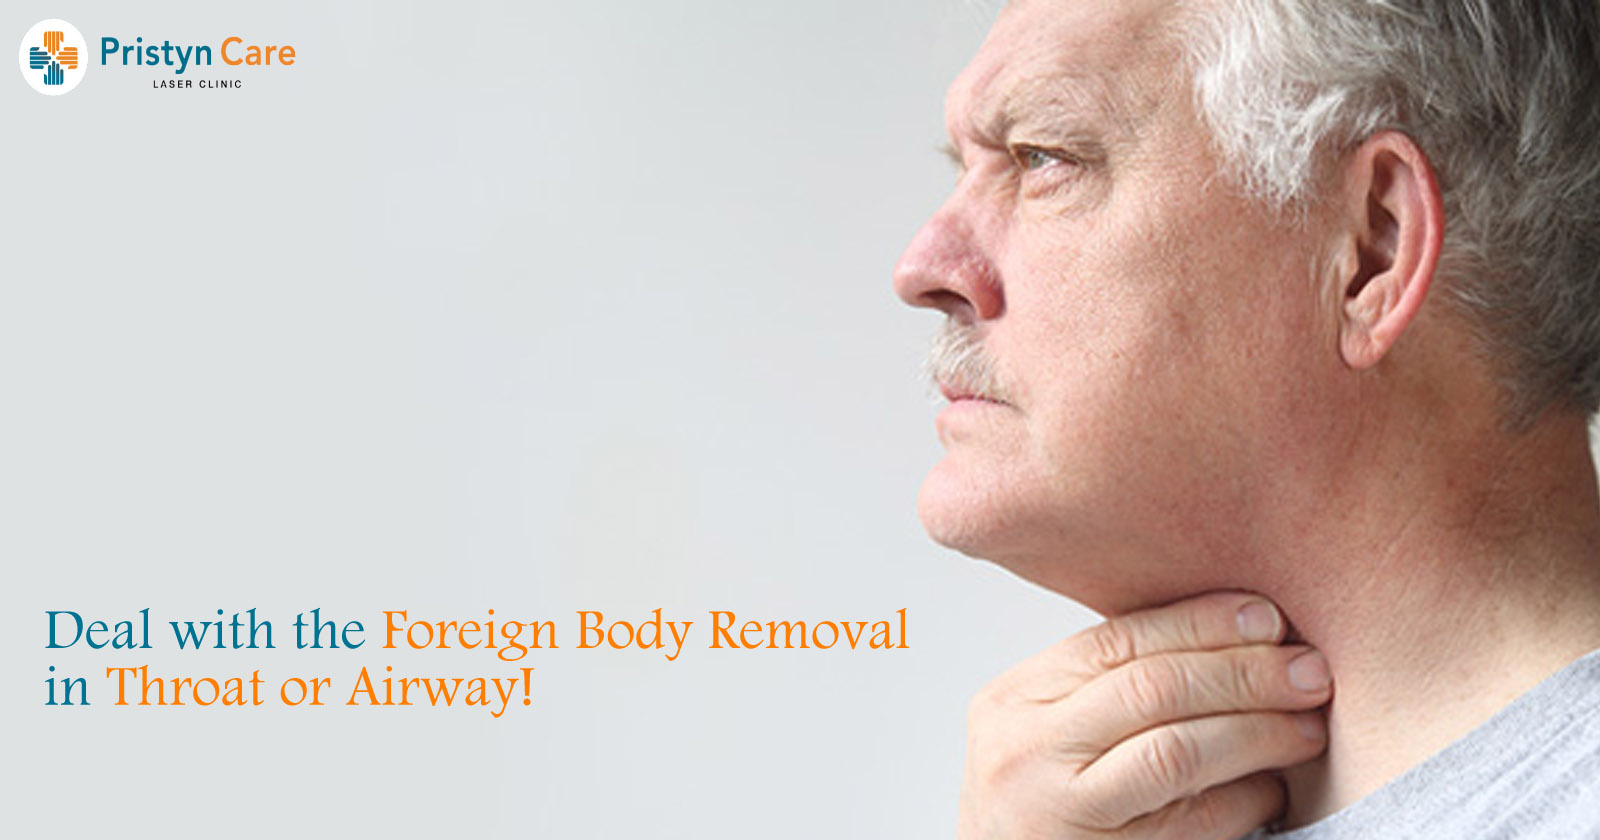 Deal with the Foreign Body Removal in Throat or Airway